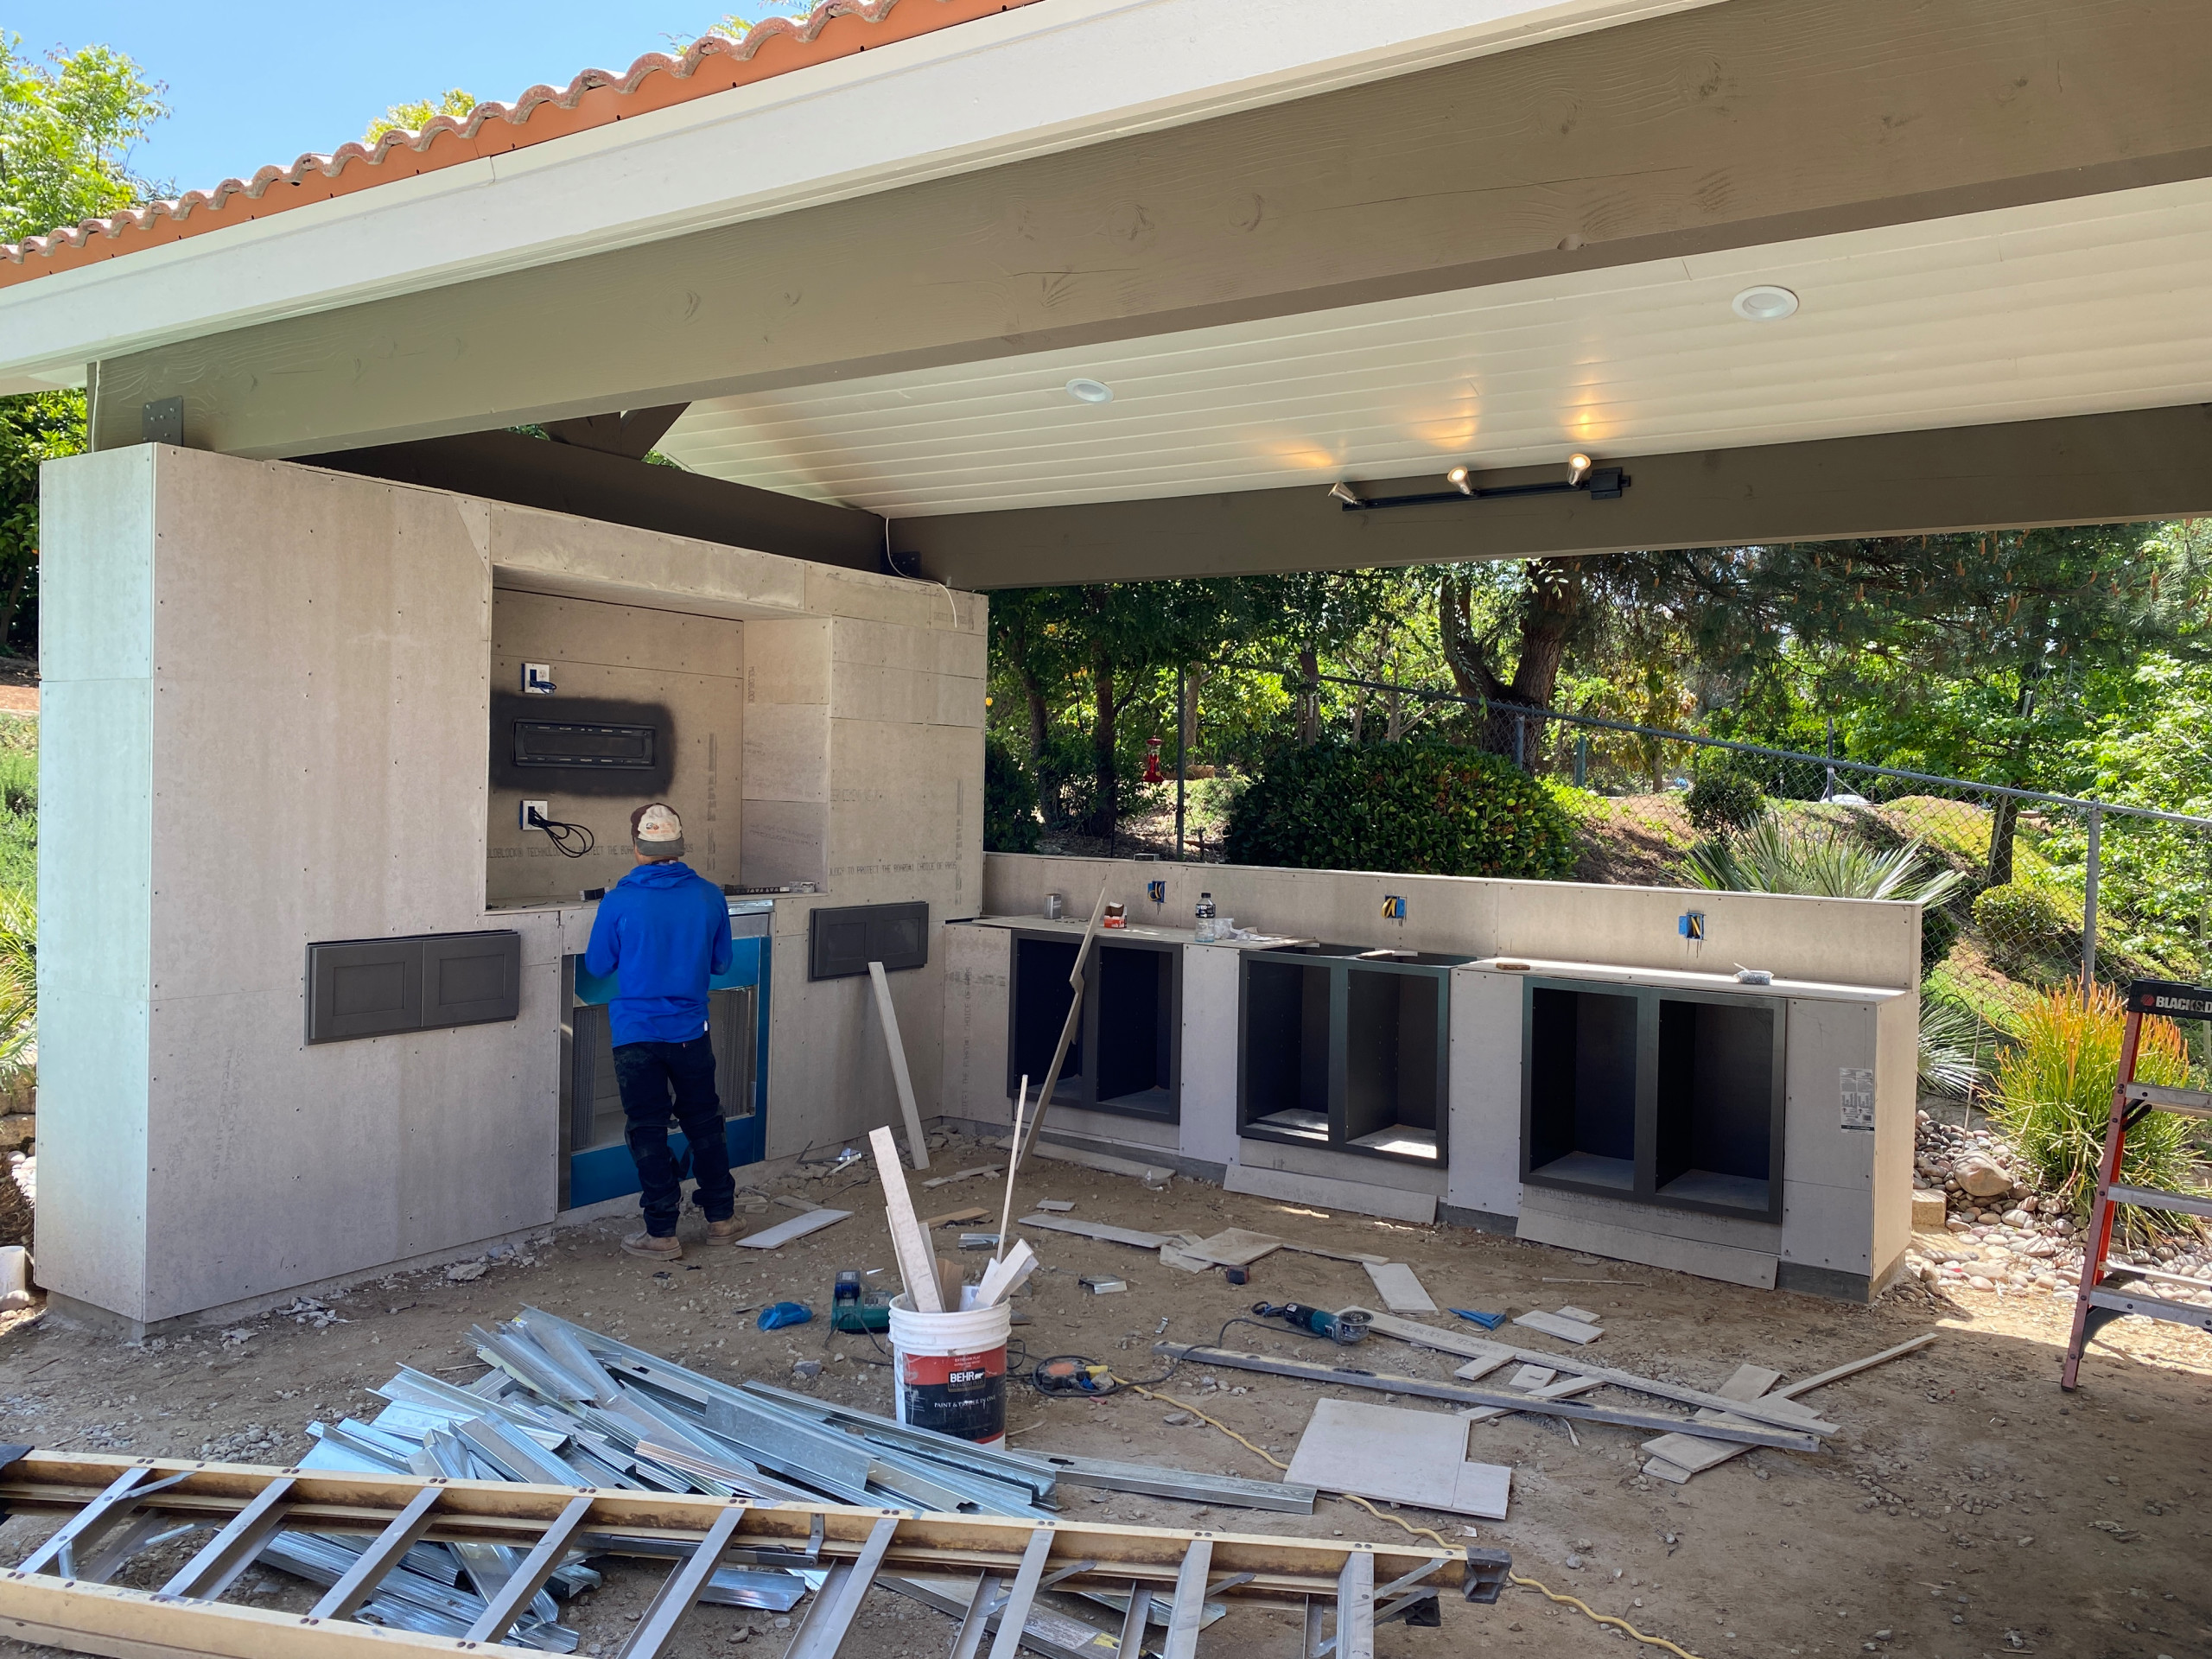 Building a TV wall with a Fireplace and Cabinet Storage in El Cajon